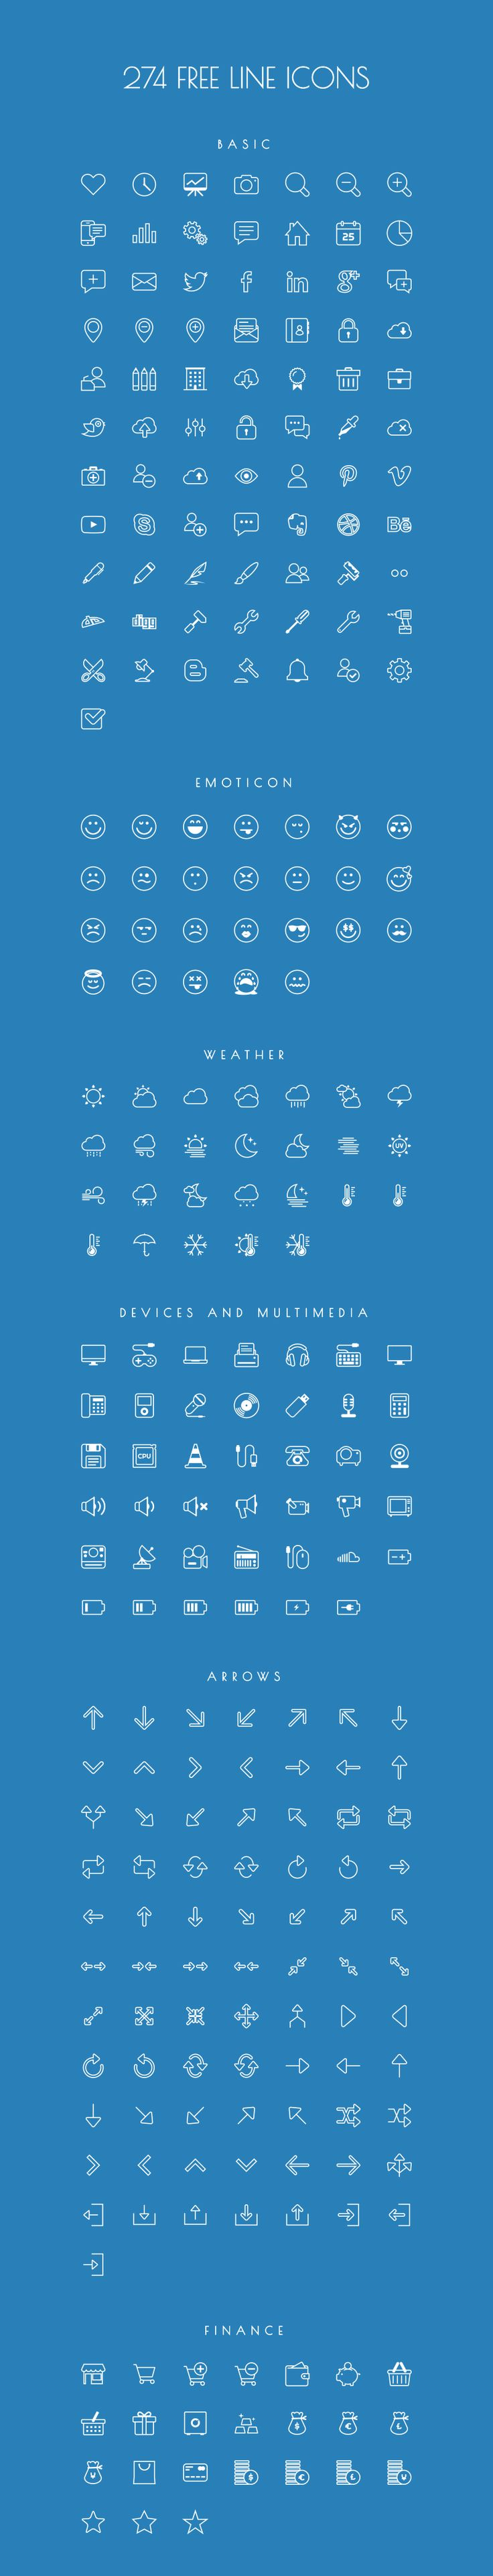 http://getcraftwork.com/274-vector-line-icons/ Completely free vector based line icons for you. In the pack you can find icons in PDF, SVG, EPS, PNG formats and finally as an icon font.